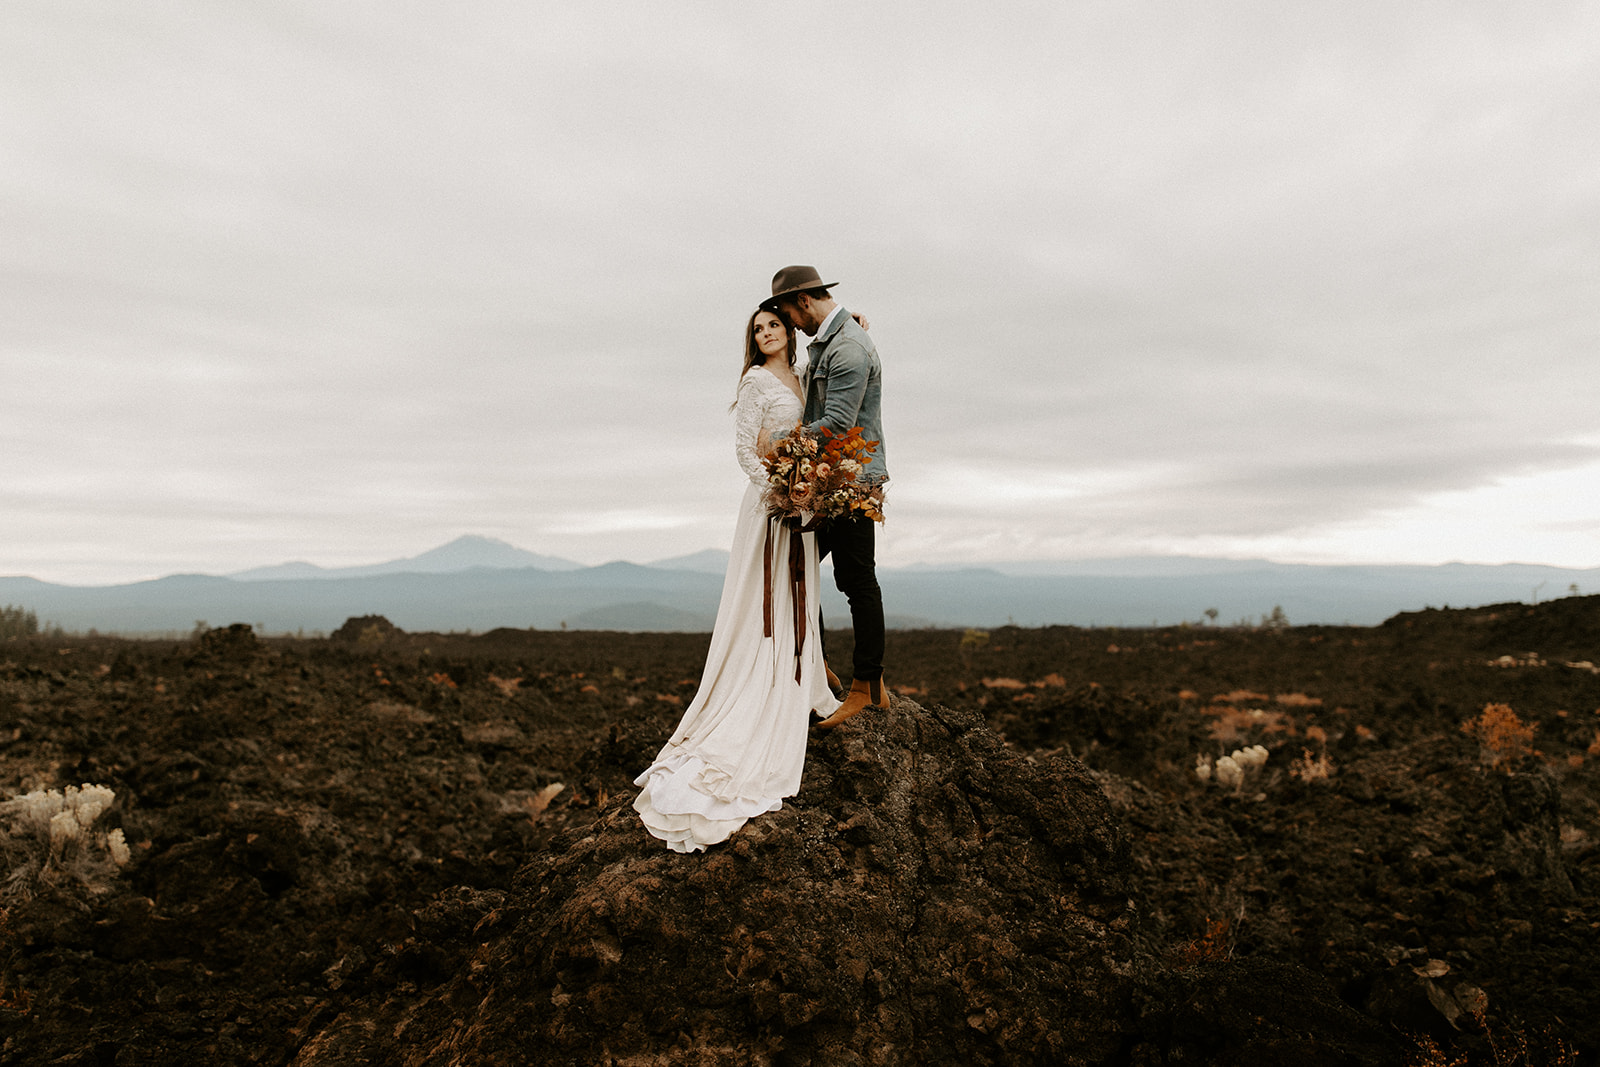 A bride and groom at their elopement in Bend, OR